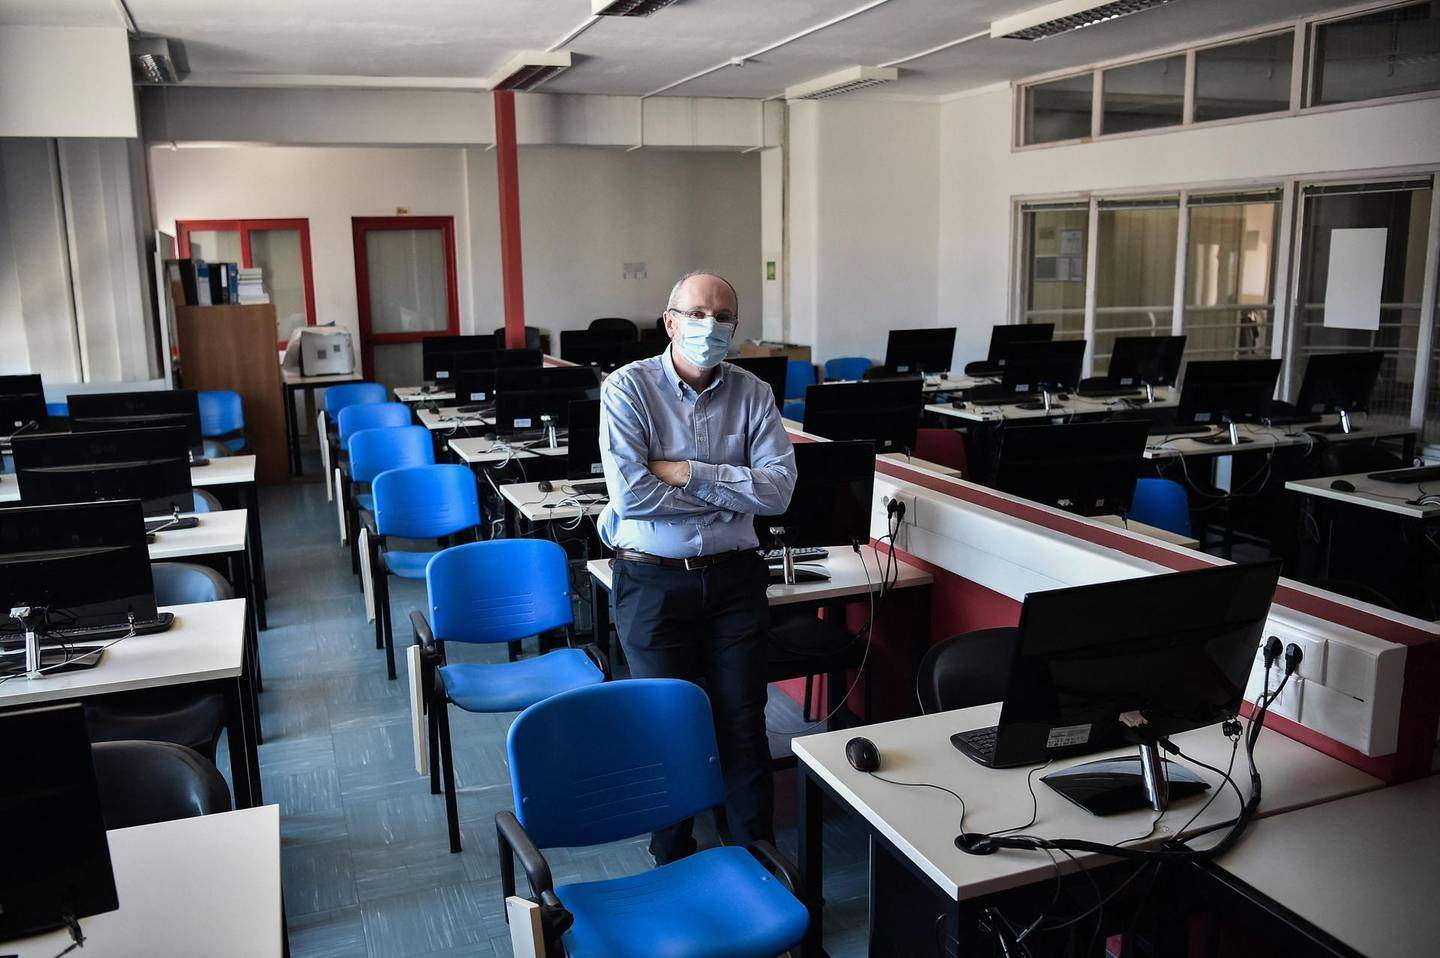 Alexandros Chatzigeorgiou, Dean and Professor of the Department of Applied Informatics poses for a photograph in a classroom in the University of Macedonia, in Thessaloniki on April 15, 2021. Shuttered for over a year due to the Covid-19 pandemic, Greek universities are now grappling with a surge in online exam cheating giving rise to a new reality: the 'Corona degree'. Both professors and students admit that examination safeguards are practically impossible to enforce in a remote learning environment with hundreds of participants simultaneously online. / AFP / Sakis MITROLIDIS